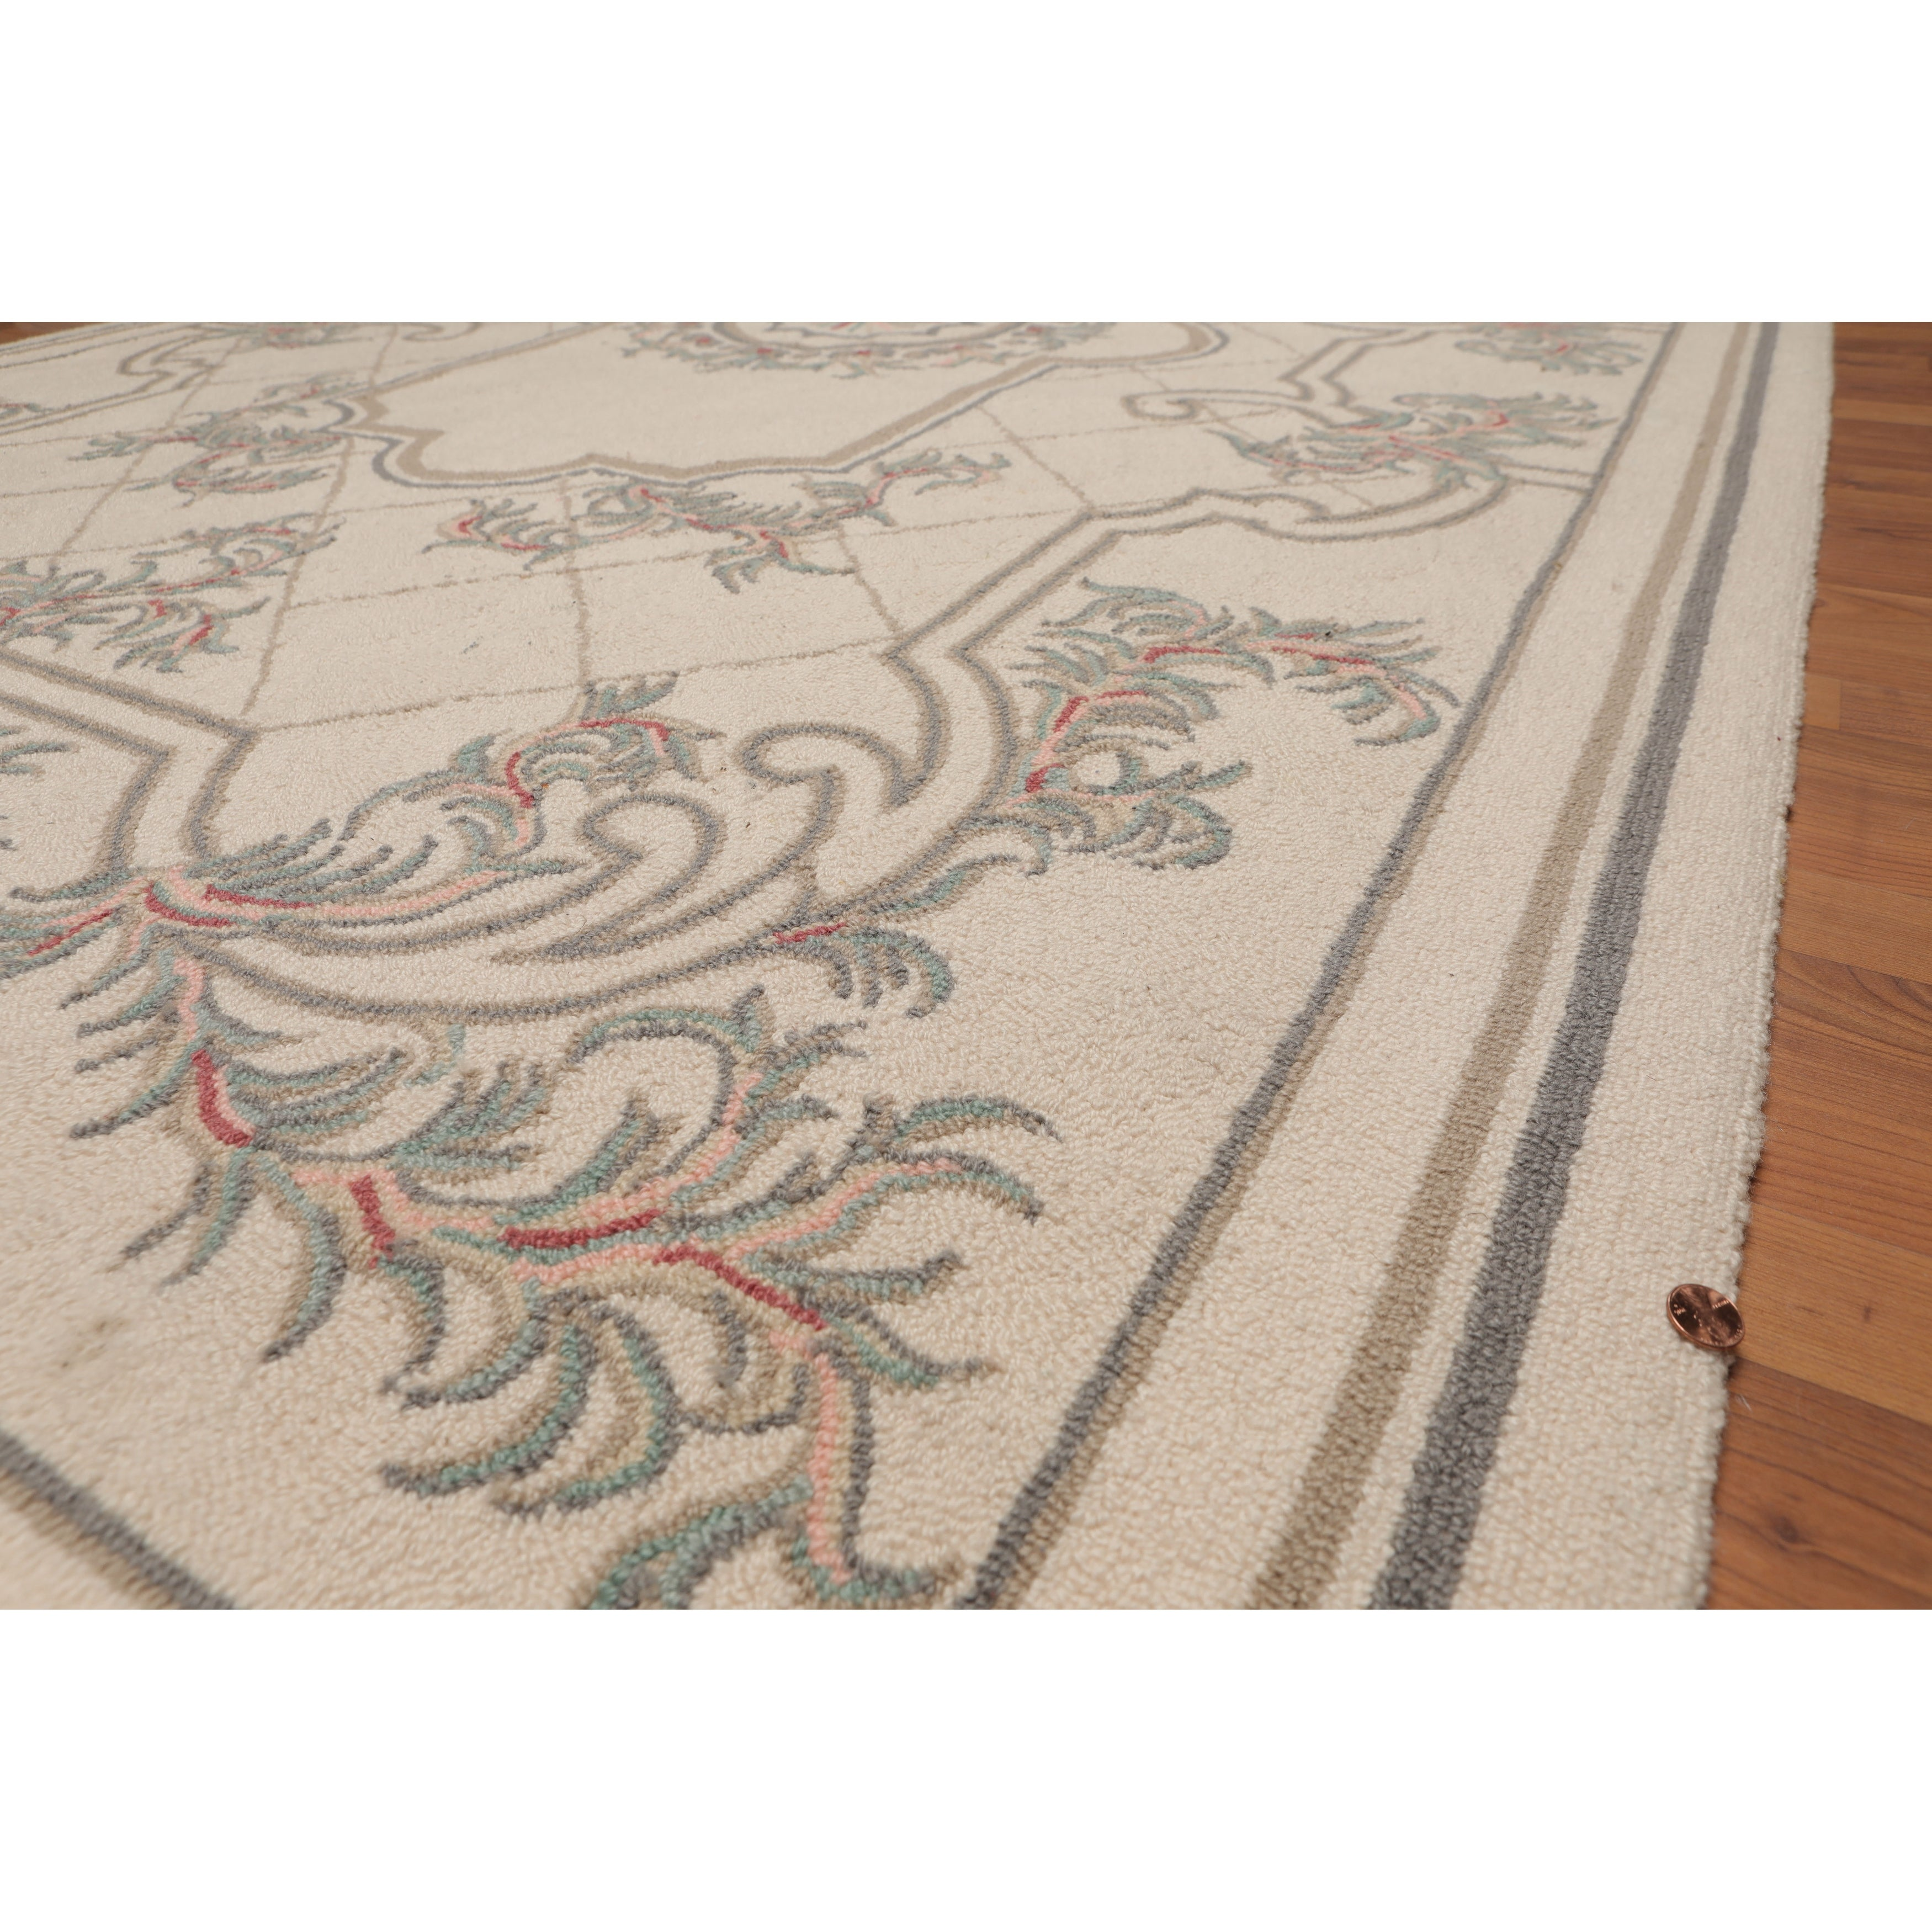 Hand Hooked Medallion Classic Design Beige Grey Oriental Area Rug Wool Traditional Oriental Area Rug 5x7 5 X 8 On Sale Overstock 31305003